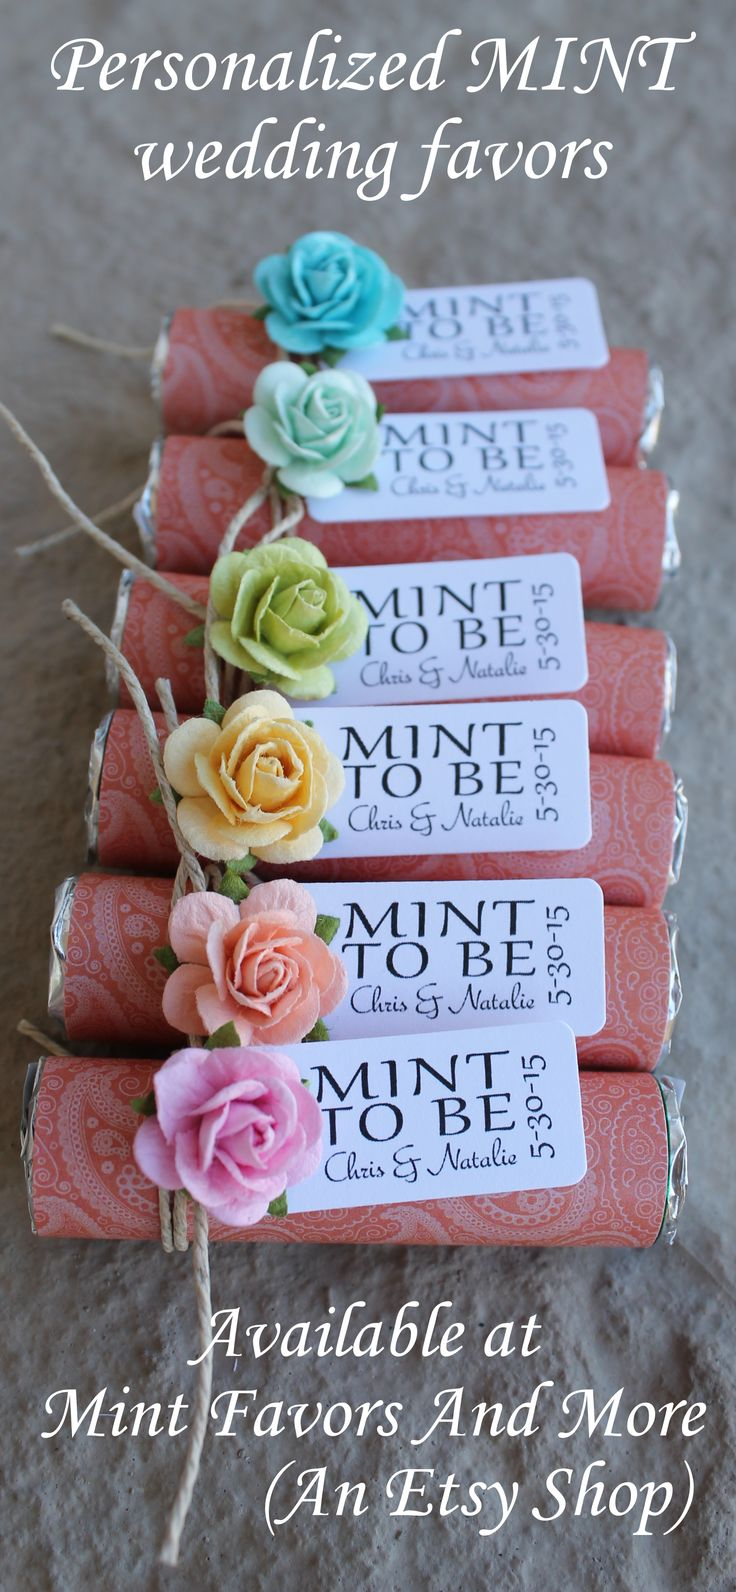 Personalized wedding favors with a MINT TO BE favor tag. Mint to be wedding favors wrapped in coral with colorful roses. Visit www.mintfavorsandmore.com for more designs.